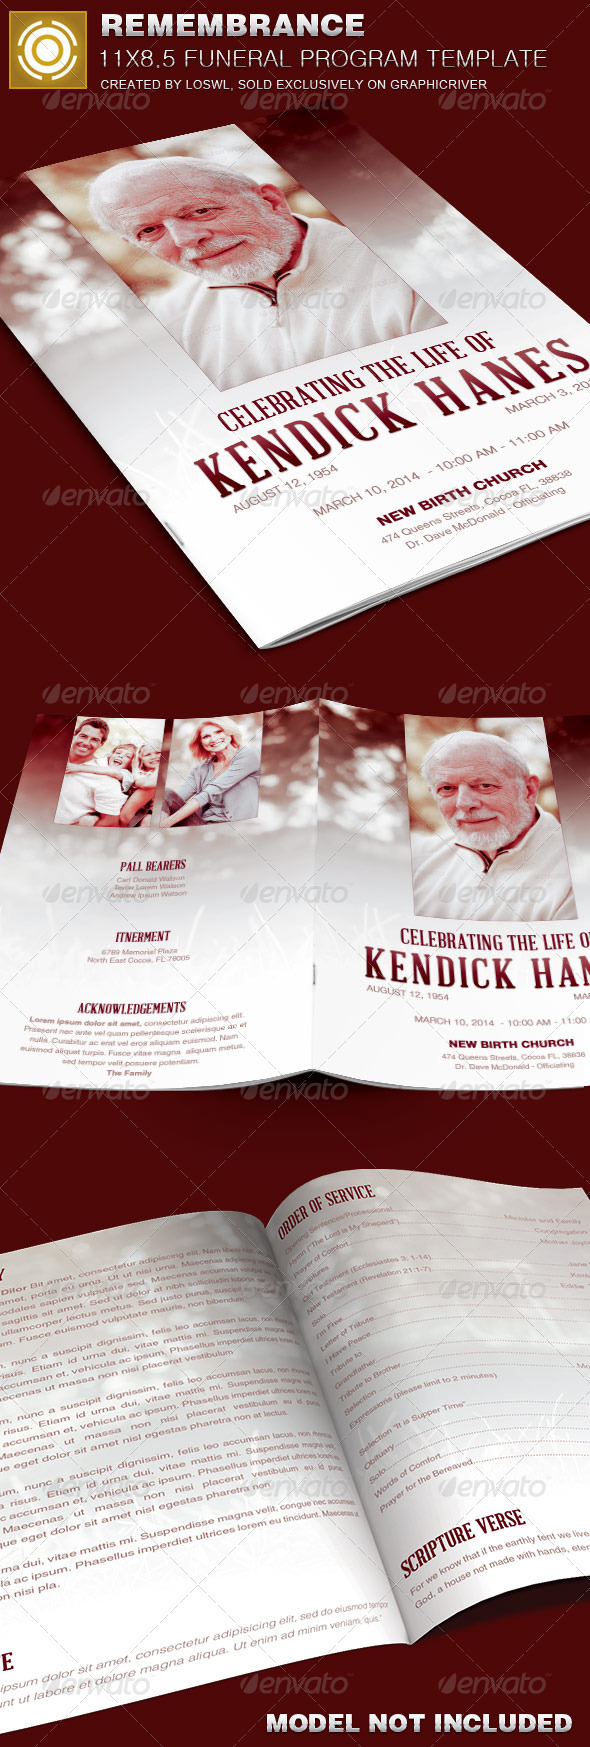 In Remembrance Funeral Program Template By Loswl Graphicriver